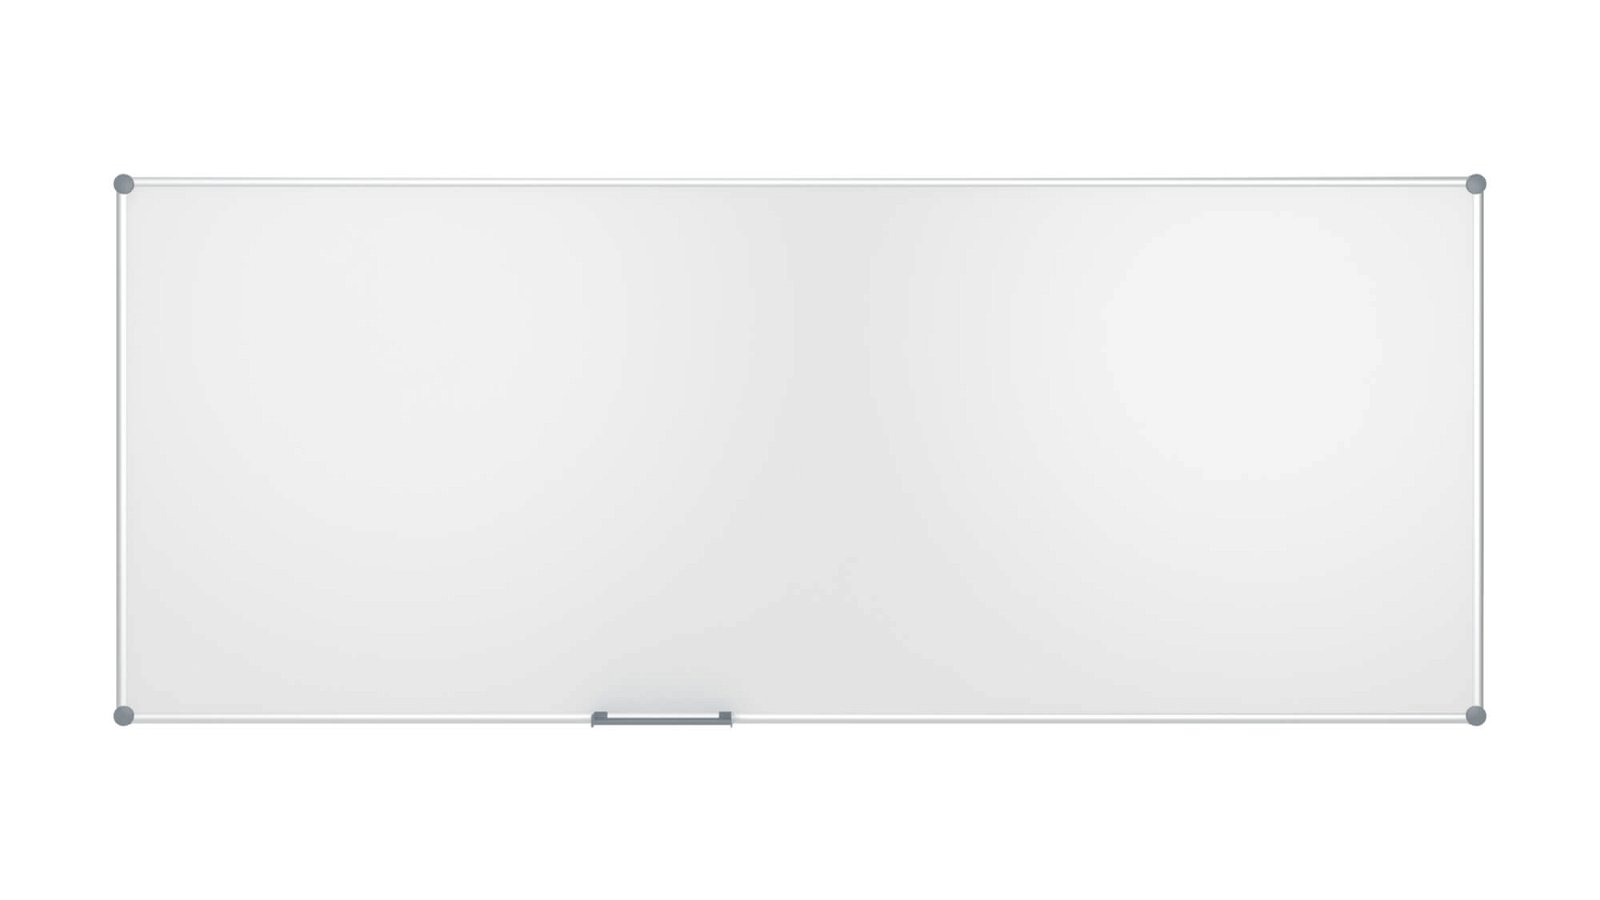 Whiteboard 2000 MAULpro, Emaille, 120x300 cm, grau